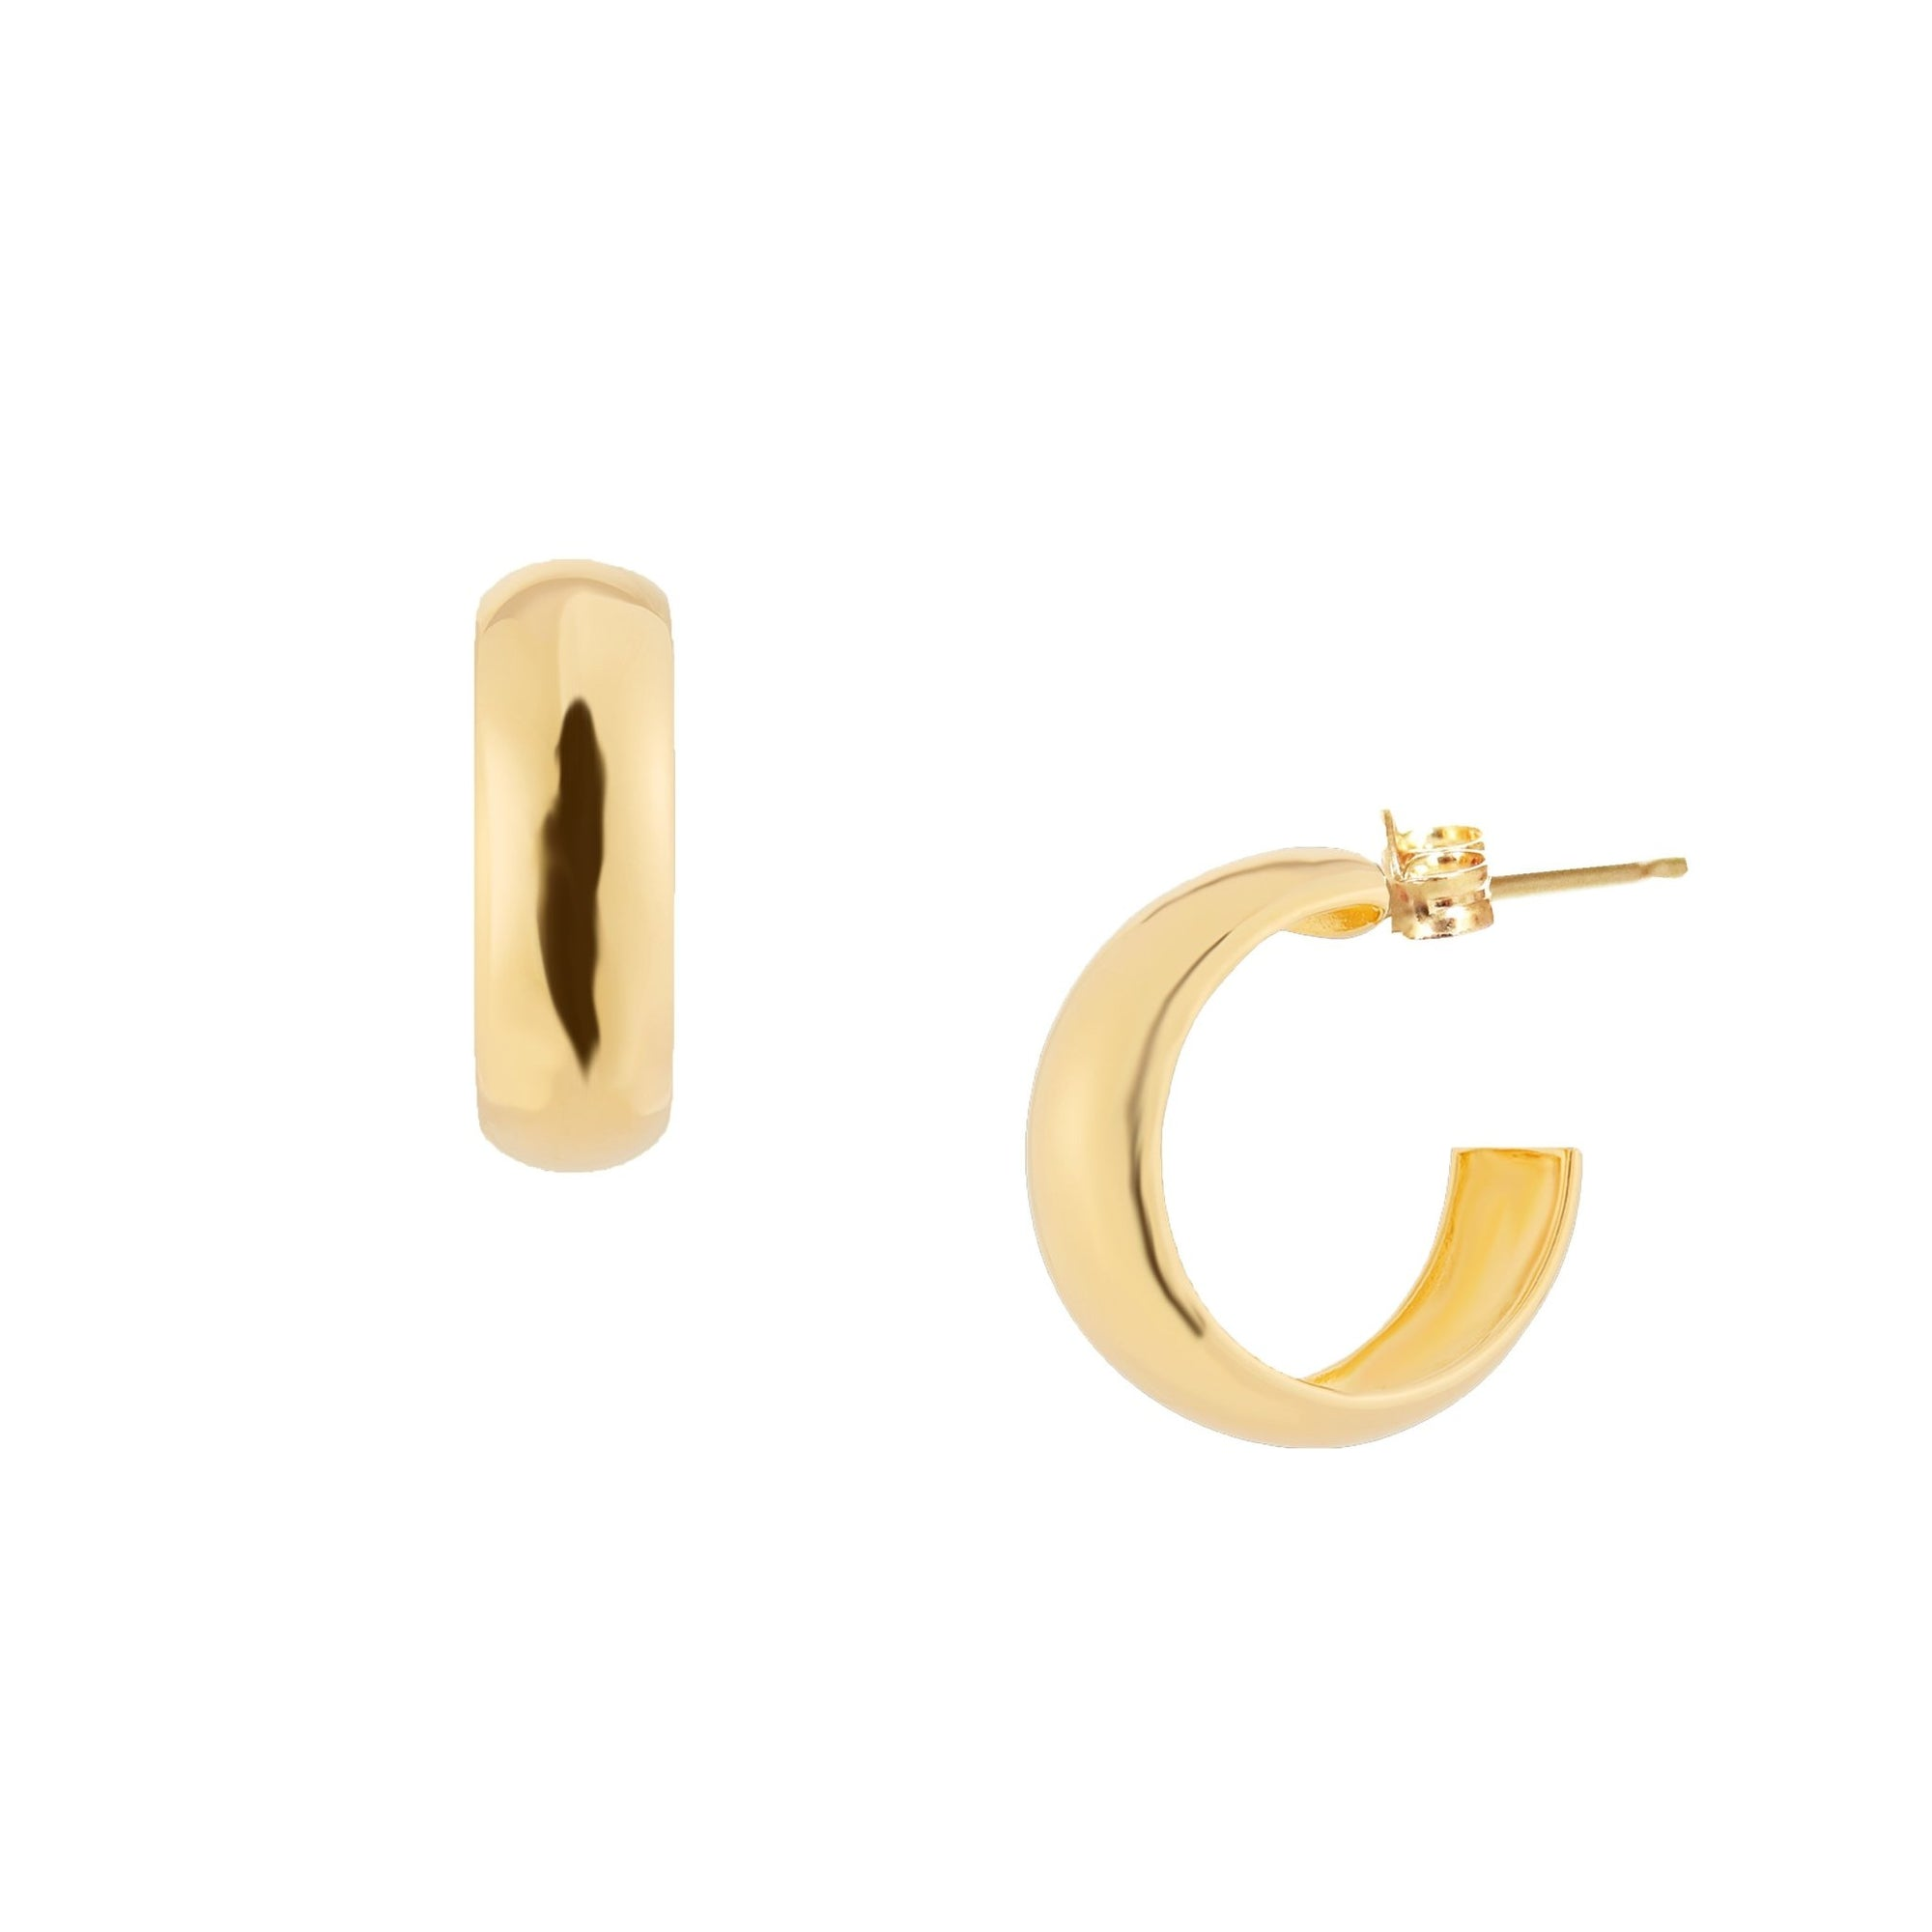 POISE HUGGIE HOOPS - GOLD - SO PRETTY CARA COTTER